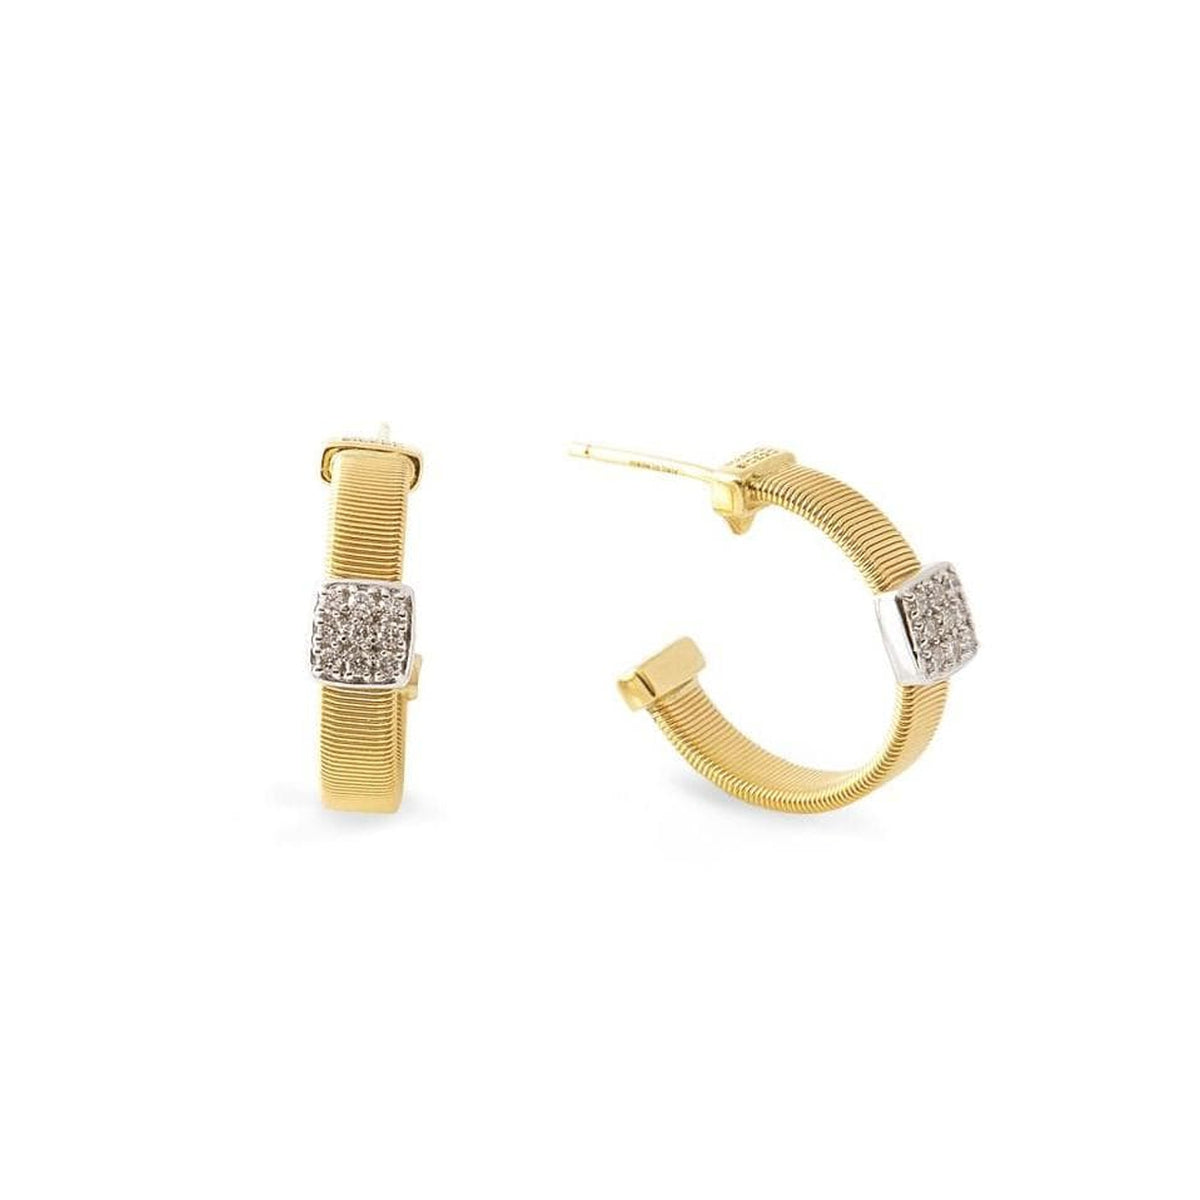 18K Masai Earrings - OG348-B-YW-Marco Bicego-Renee Taylor Gallery